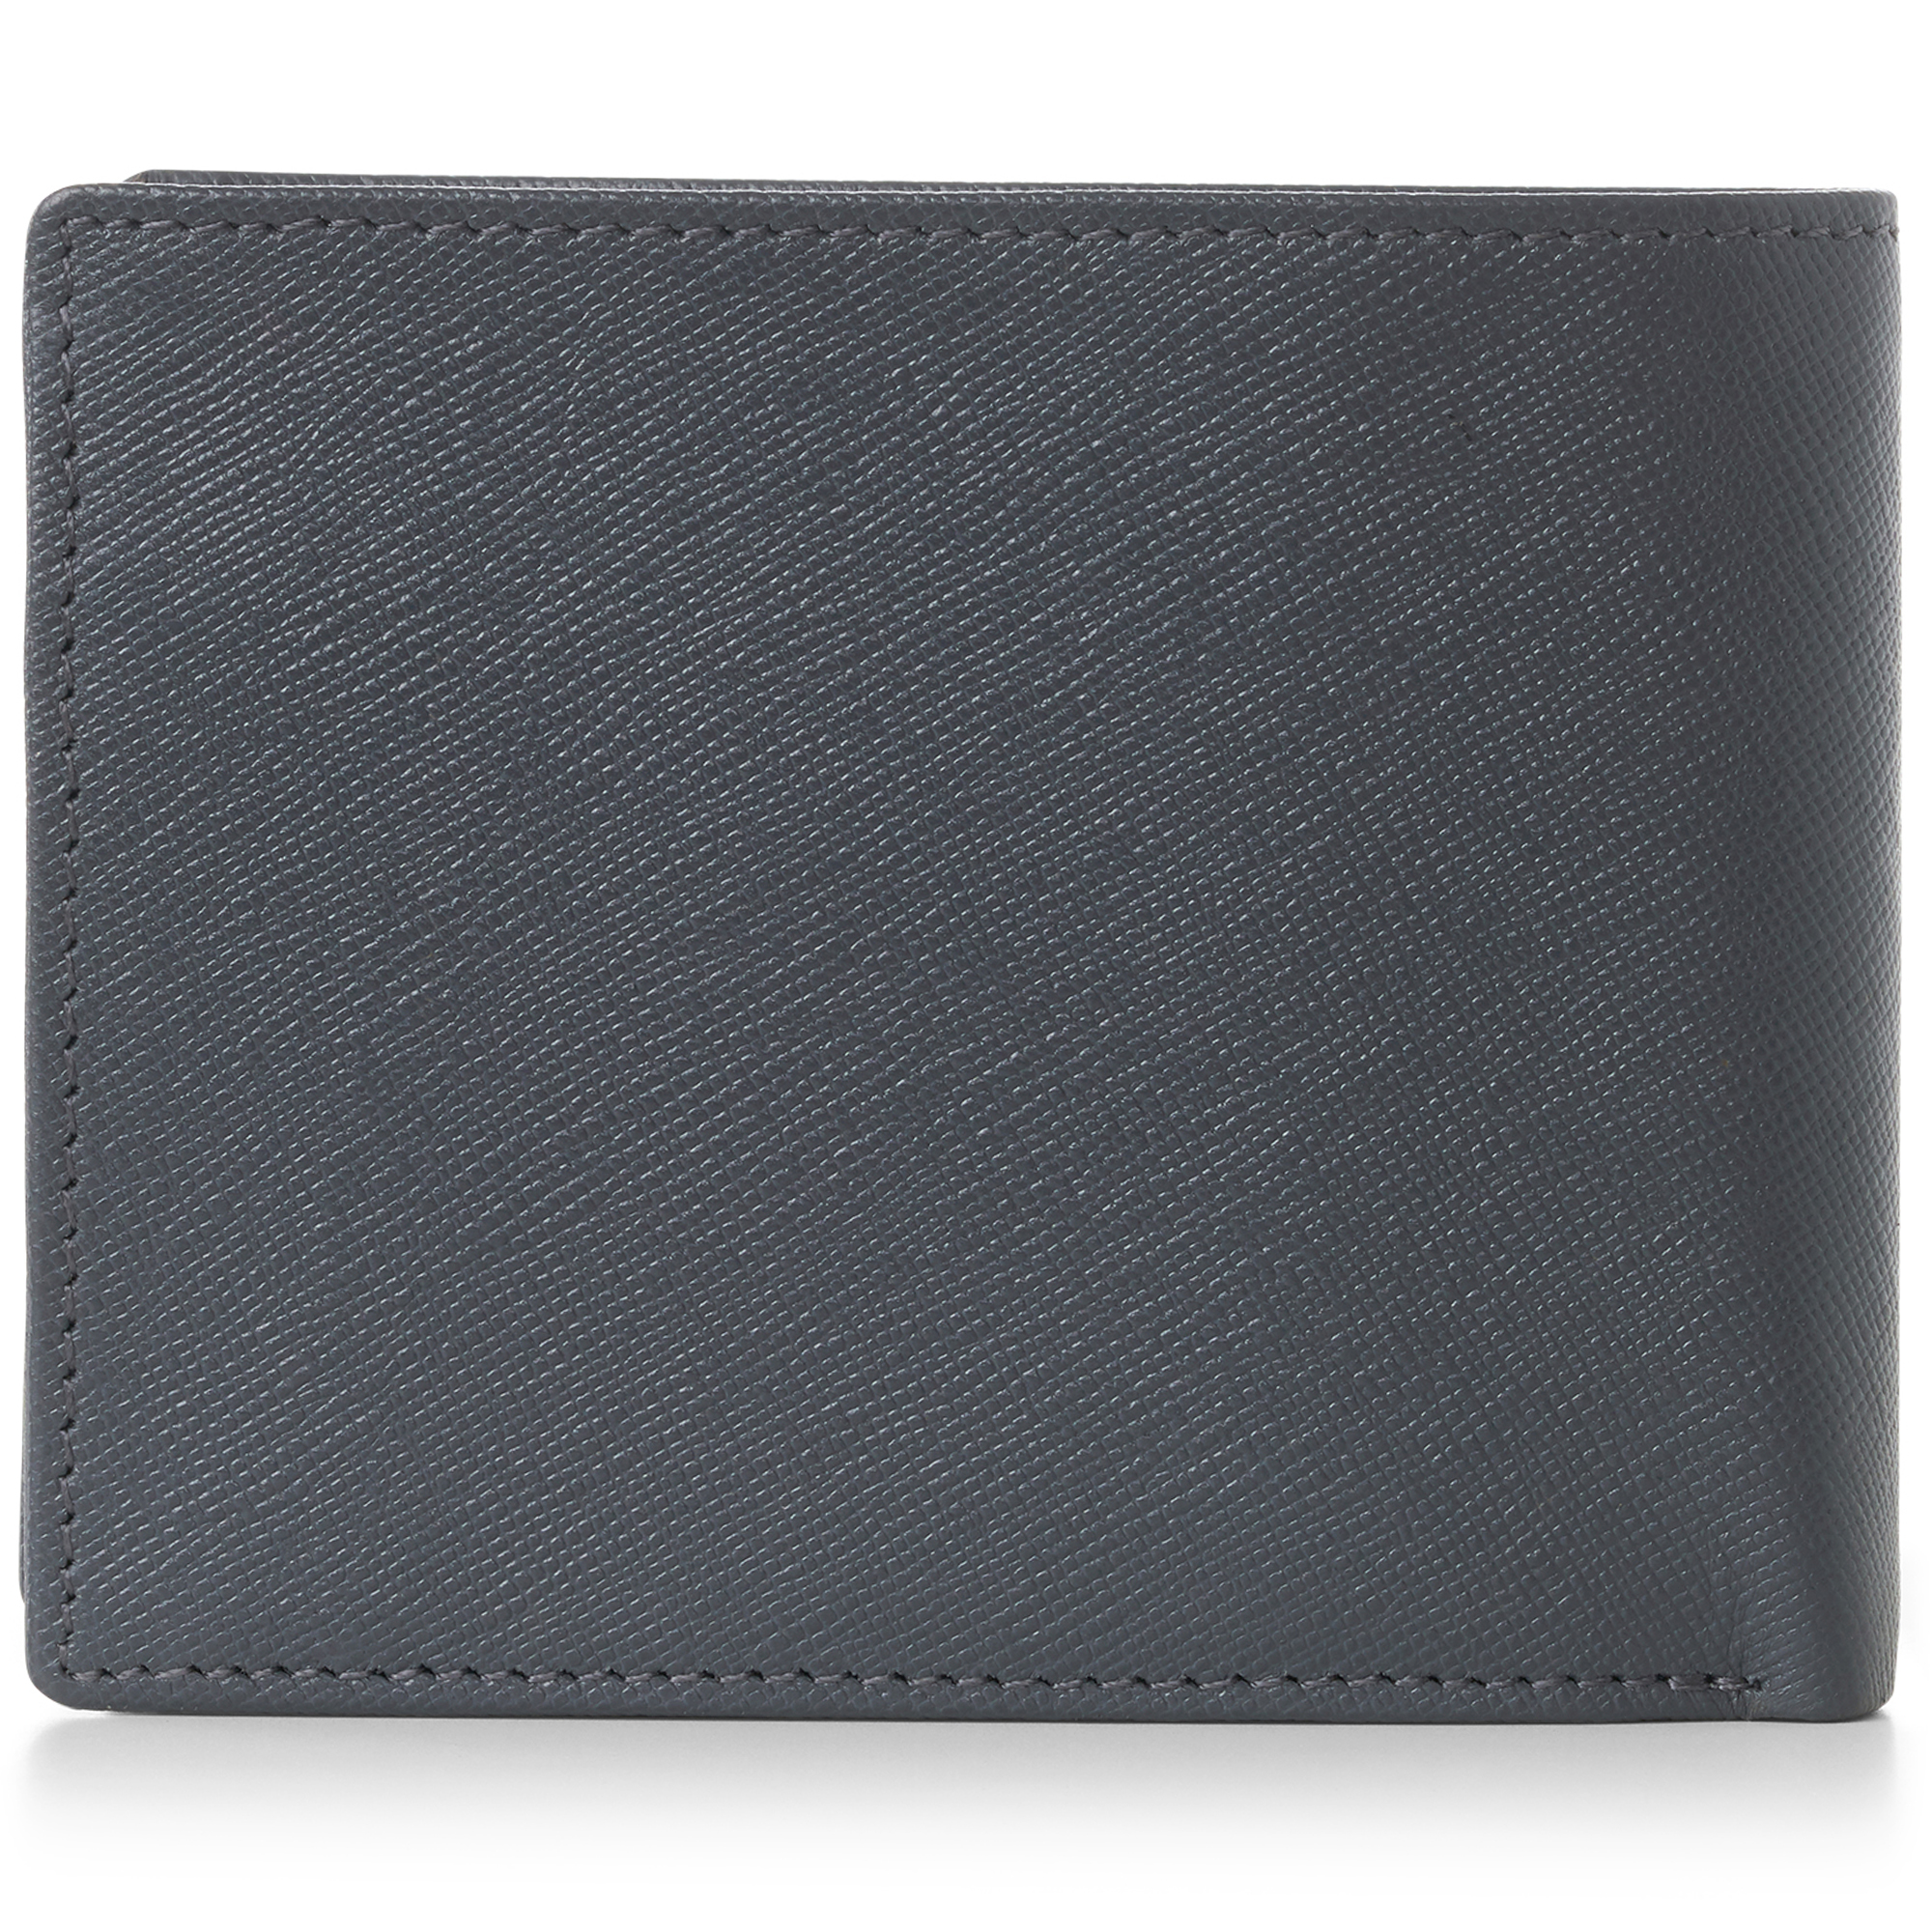 miniature 55 - Alpine-Swiss-RFID-Mens-Wallet-Deluxe-Capacity-Passcase-Bifold-Two-Bill-Sections